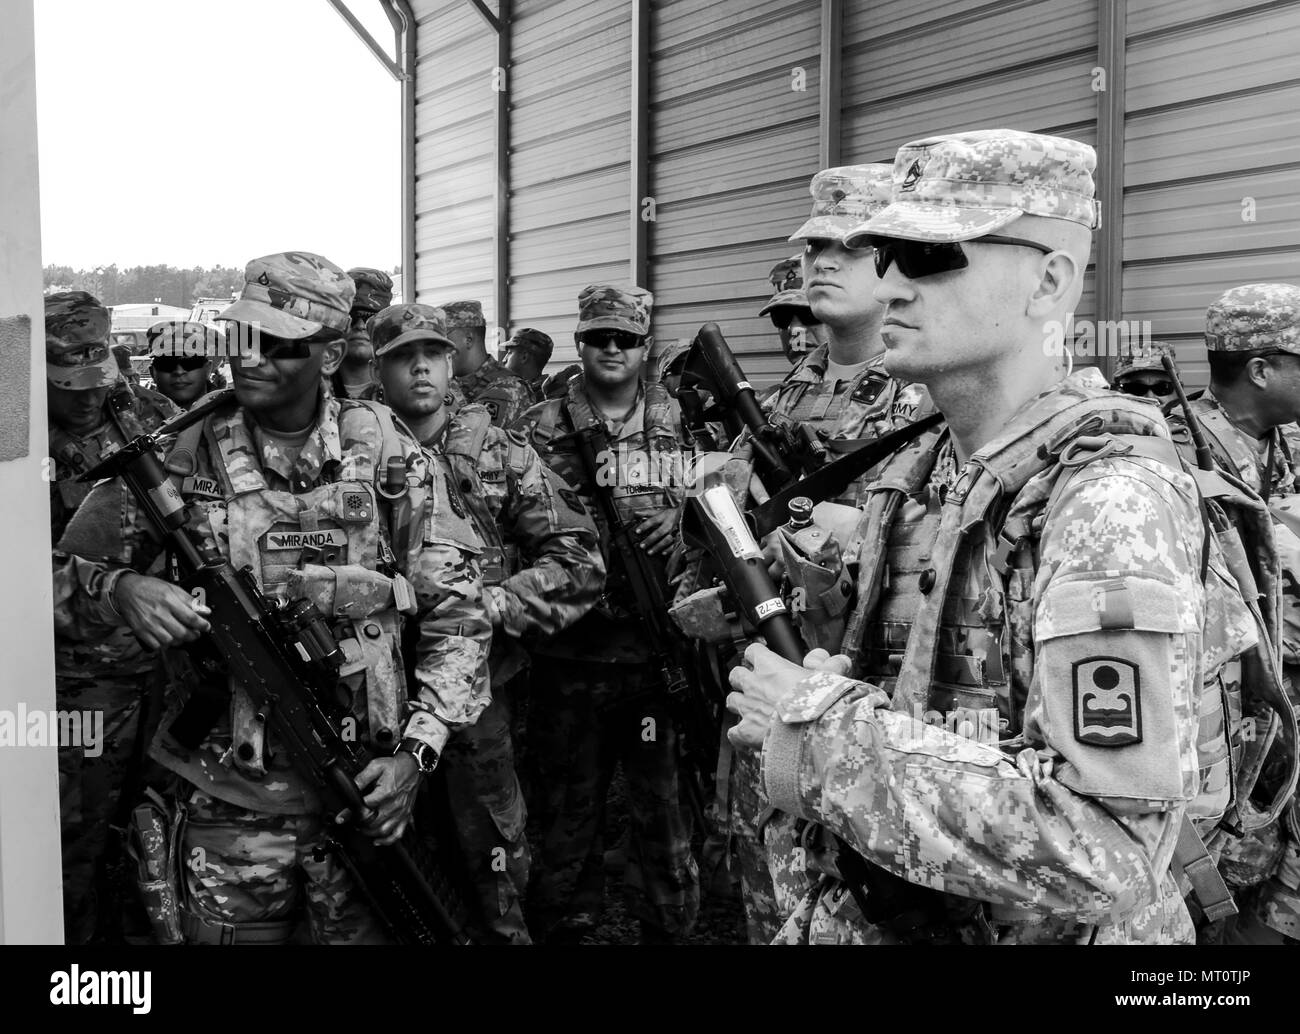 170718 Z PX072 088 Soldiers With C Company 1st Battalion 65th Infantry Regiment Puerto Rico Army National Guard Assemble After Having Their Weapons